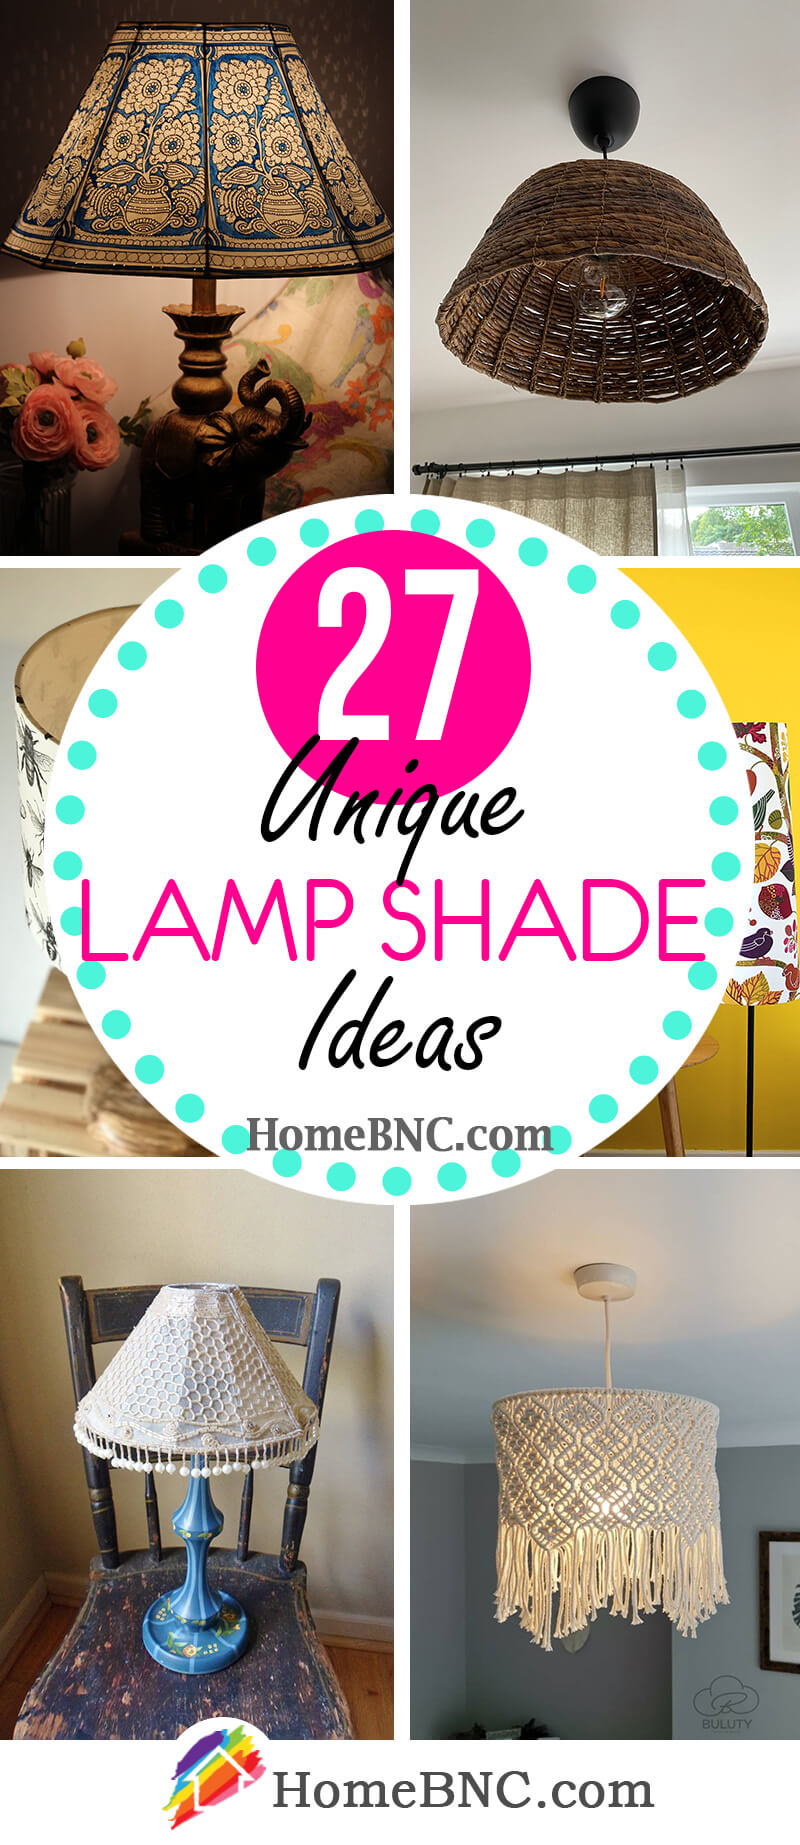 27 Best Unique Lamp Shades That Will Make Any Room Prettier In 2021